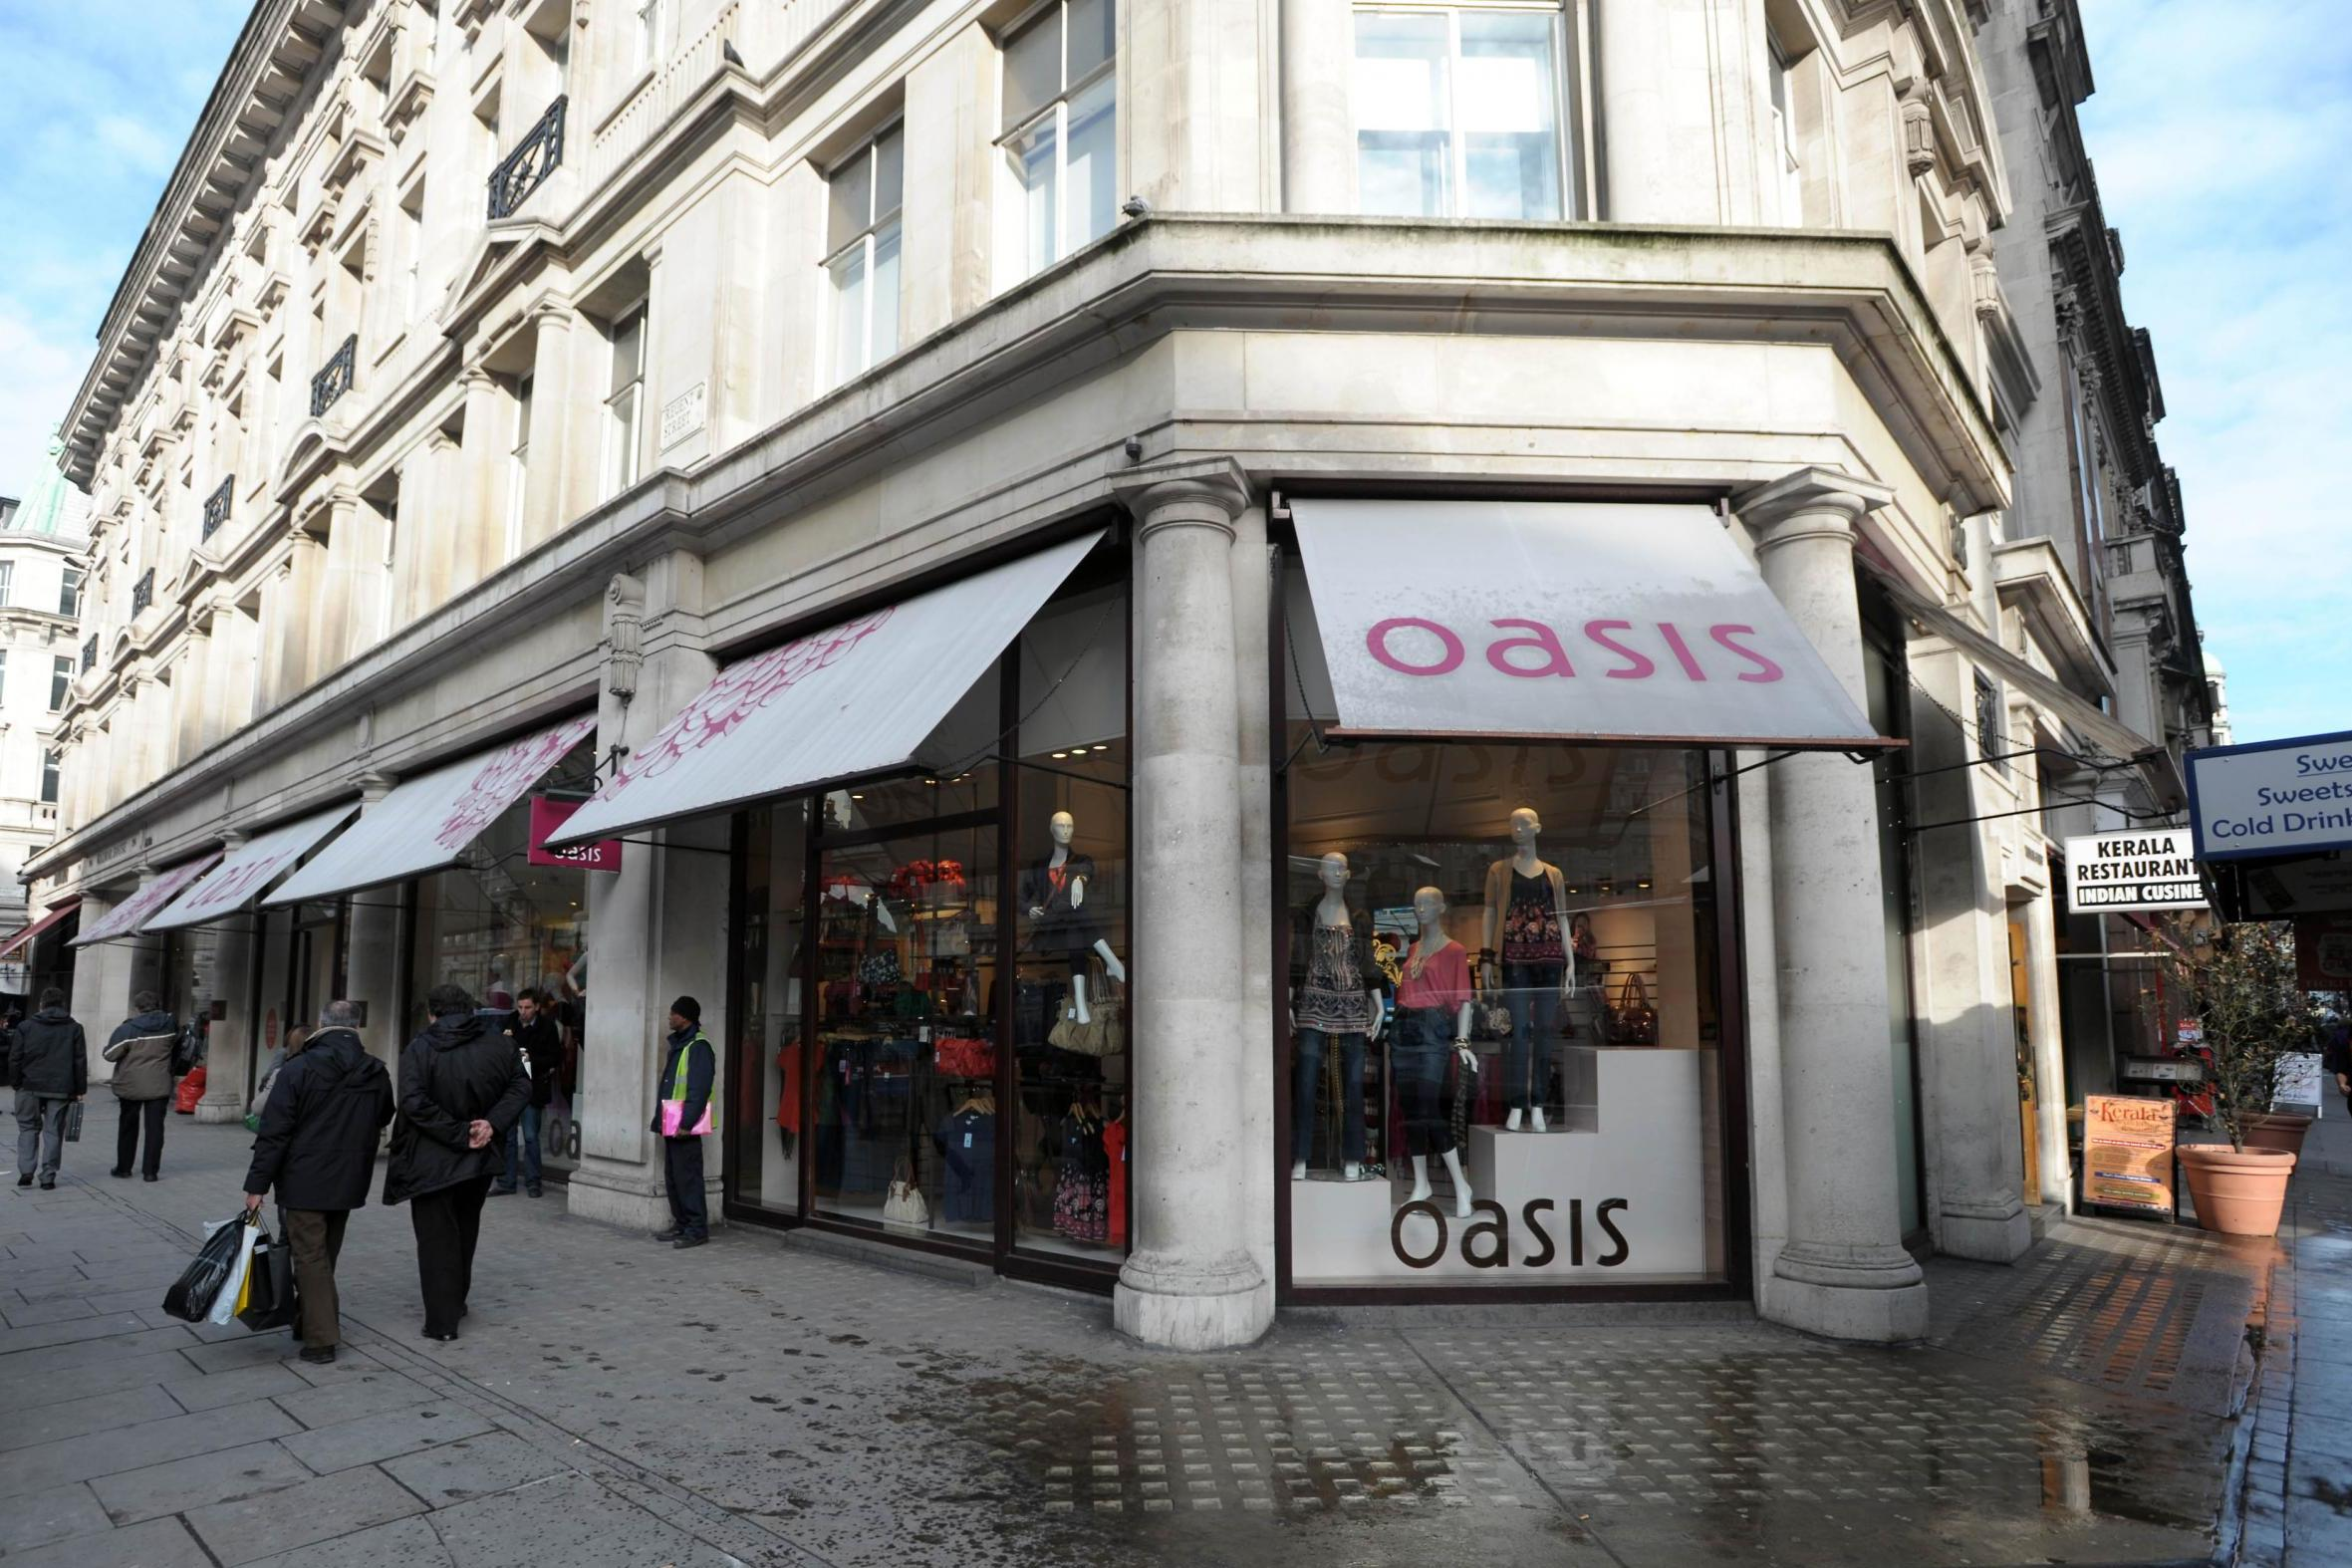 Oasis and Warehouse reportedly close to administration, threatening 2,000 jobs